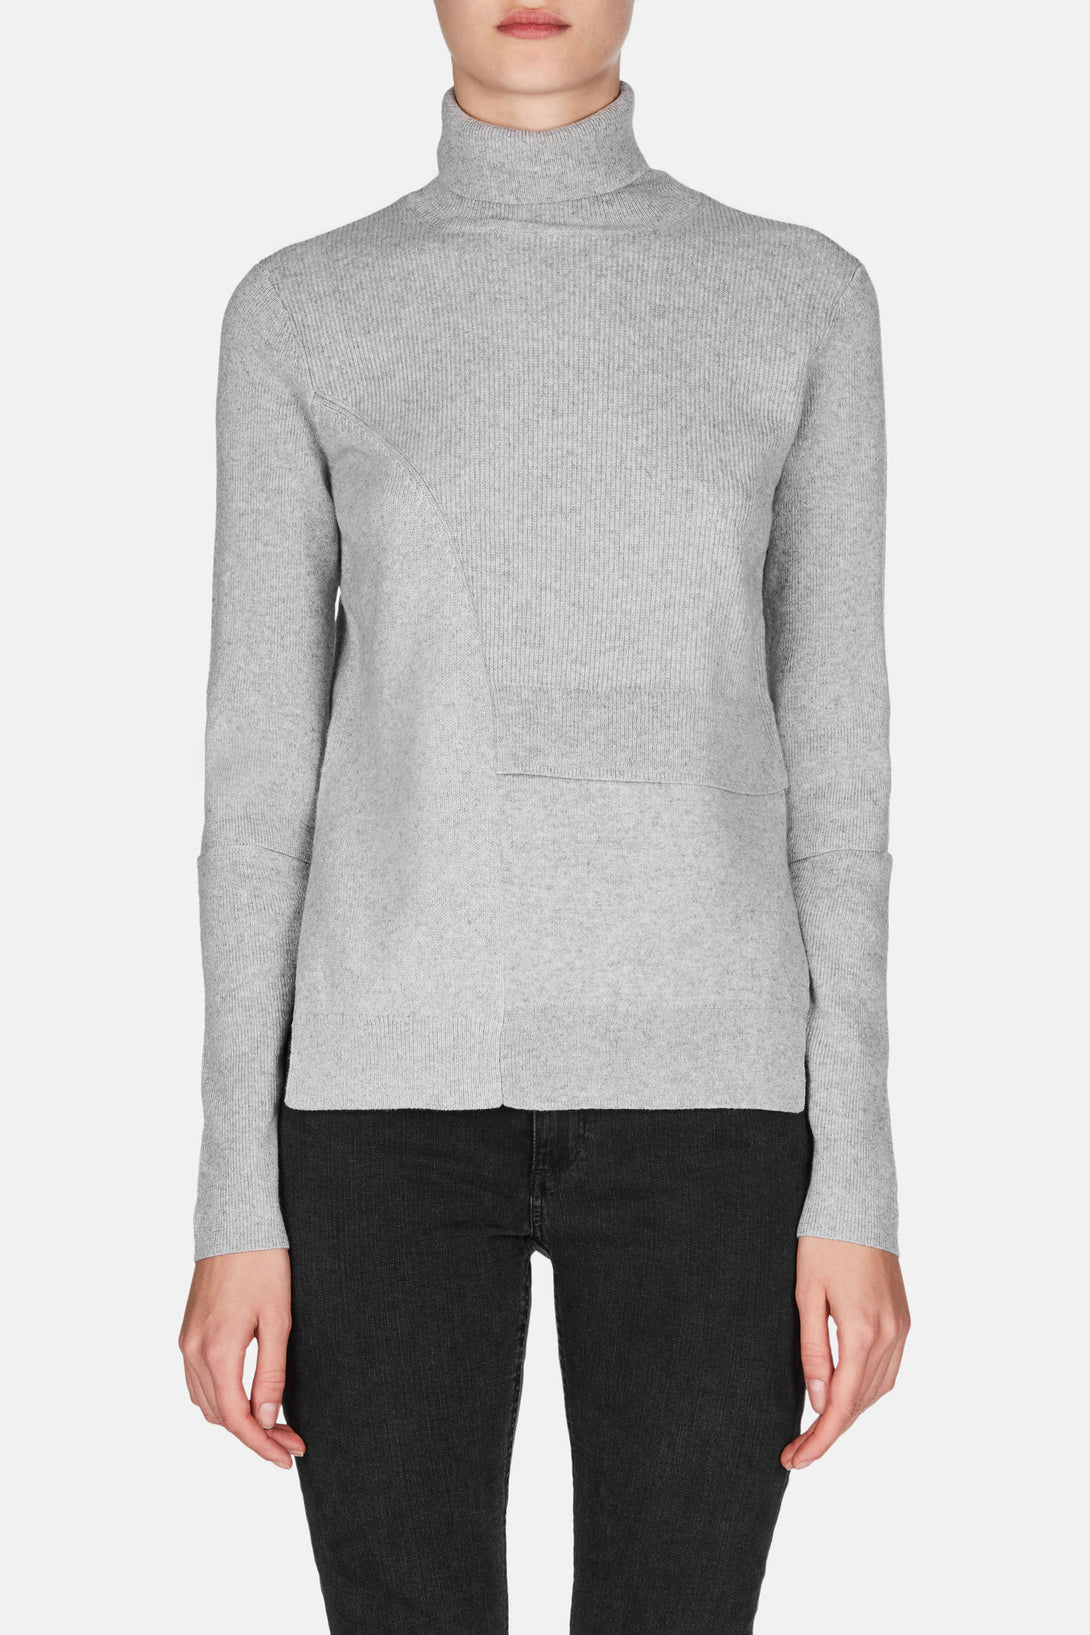 Patchwork Knit Turtleneck - Light Grey Melange